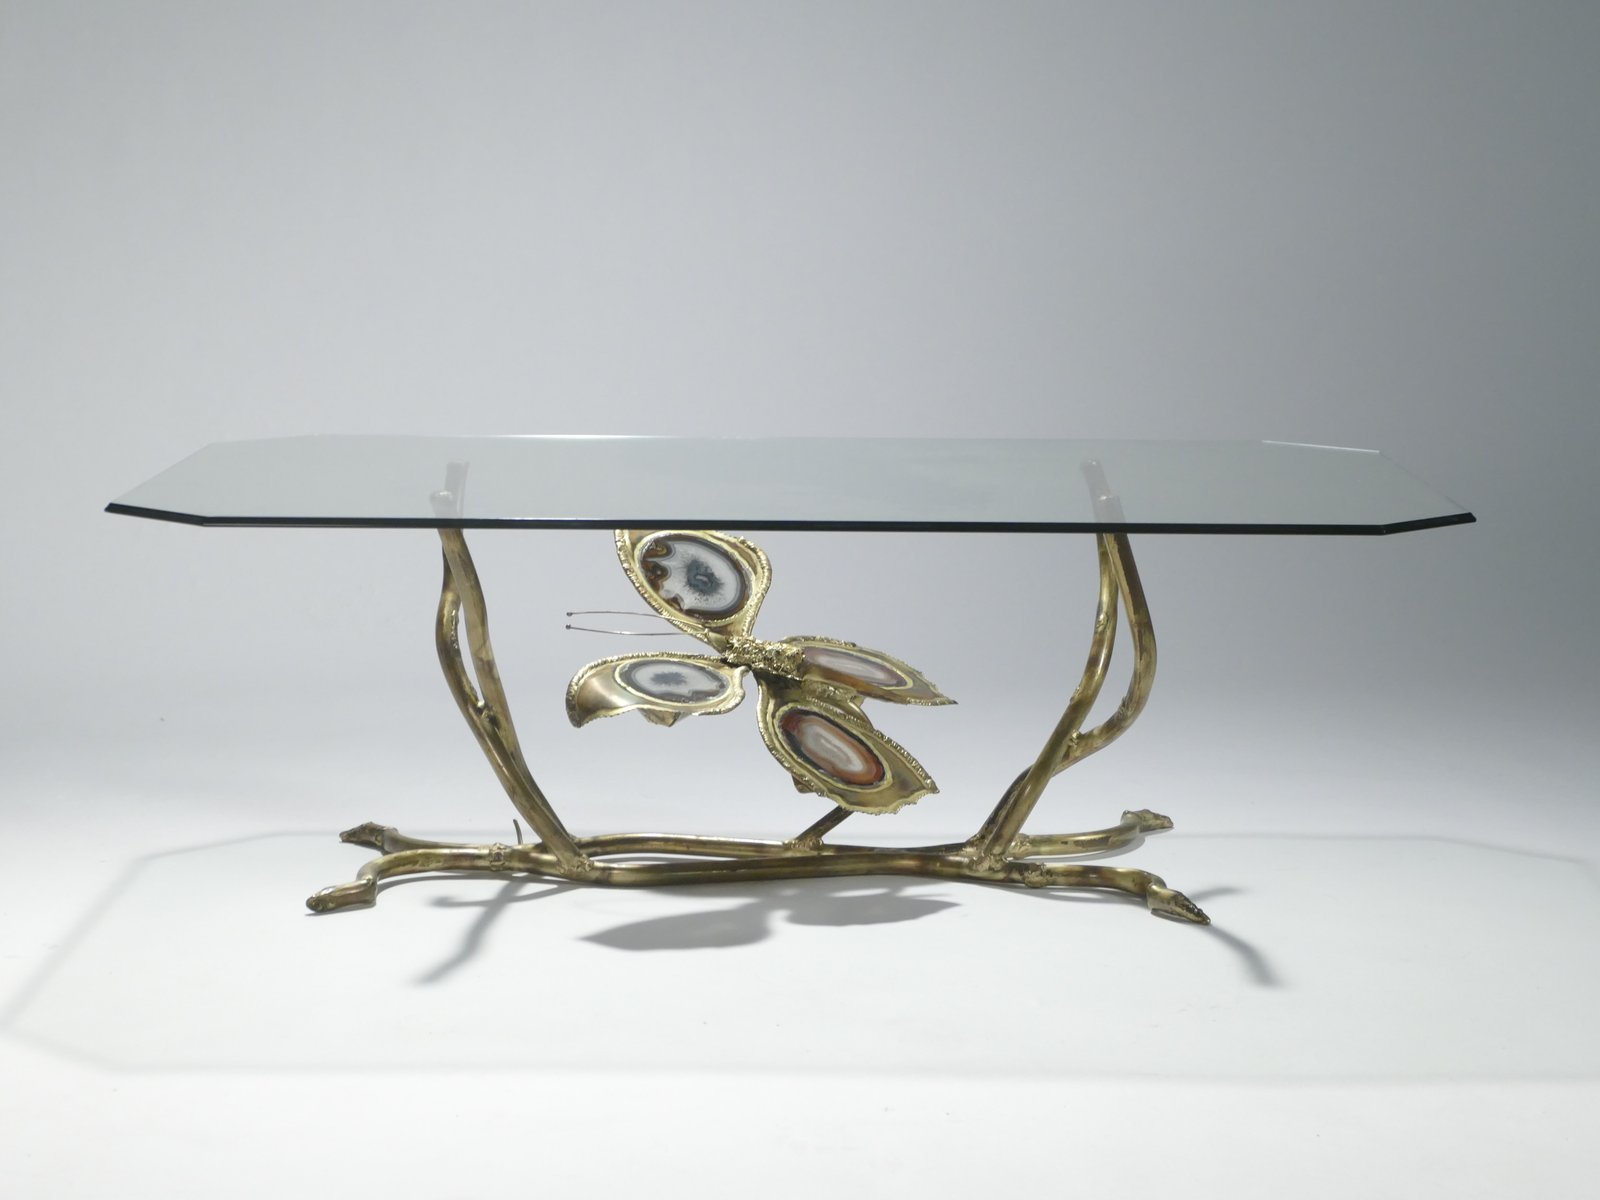 Vintage Bronze Glass Coffee Table by Henri Fernandez 1970s for